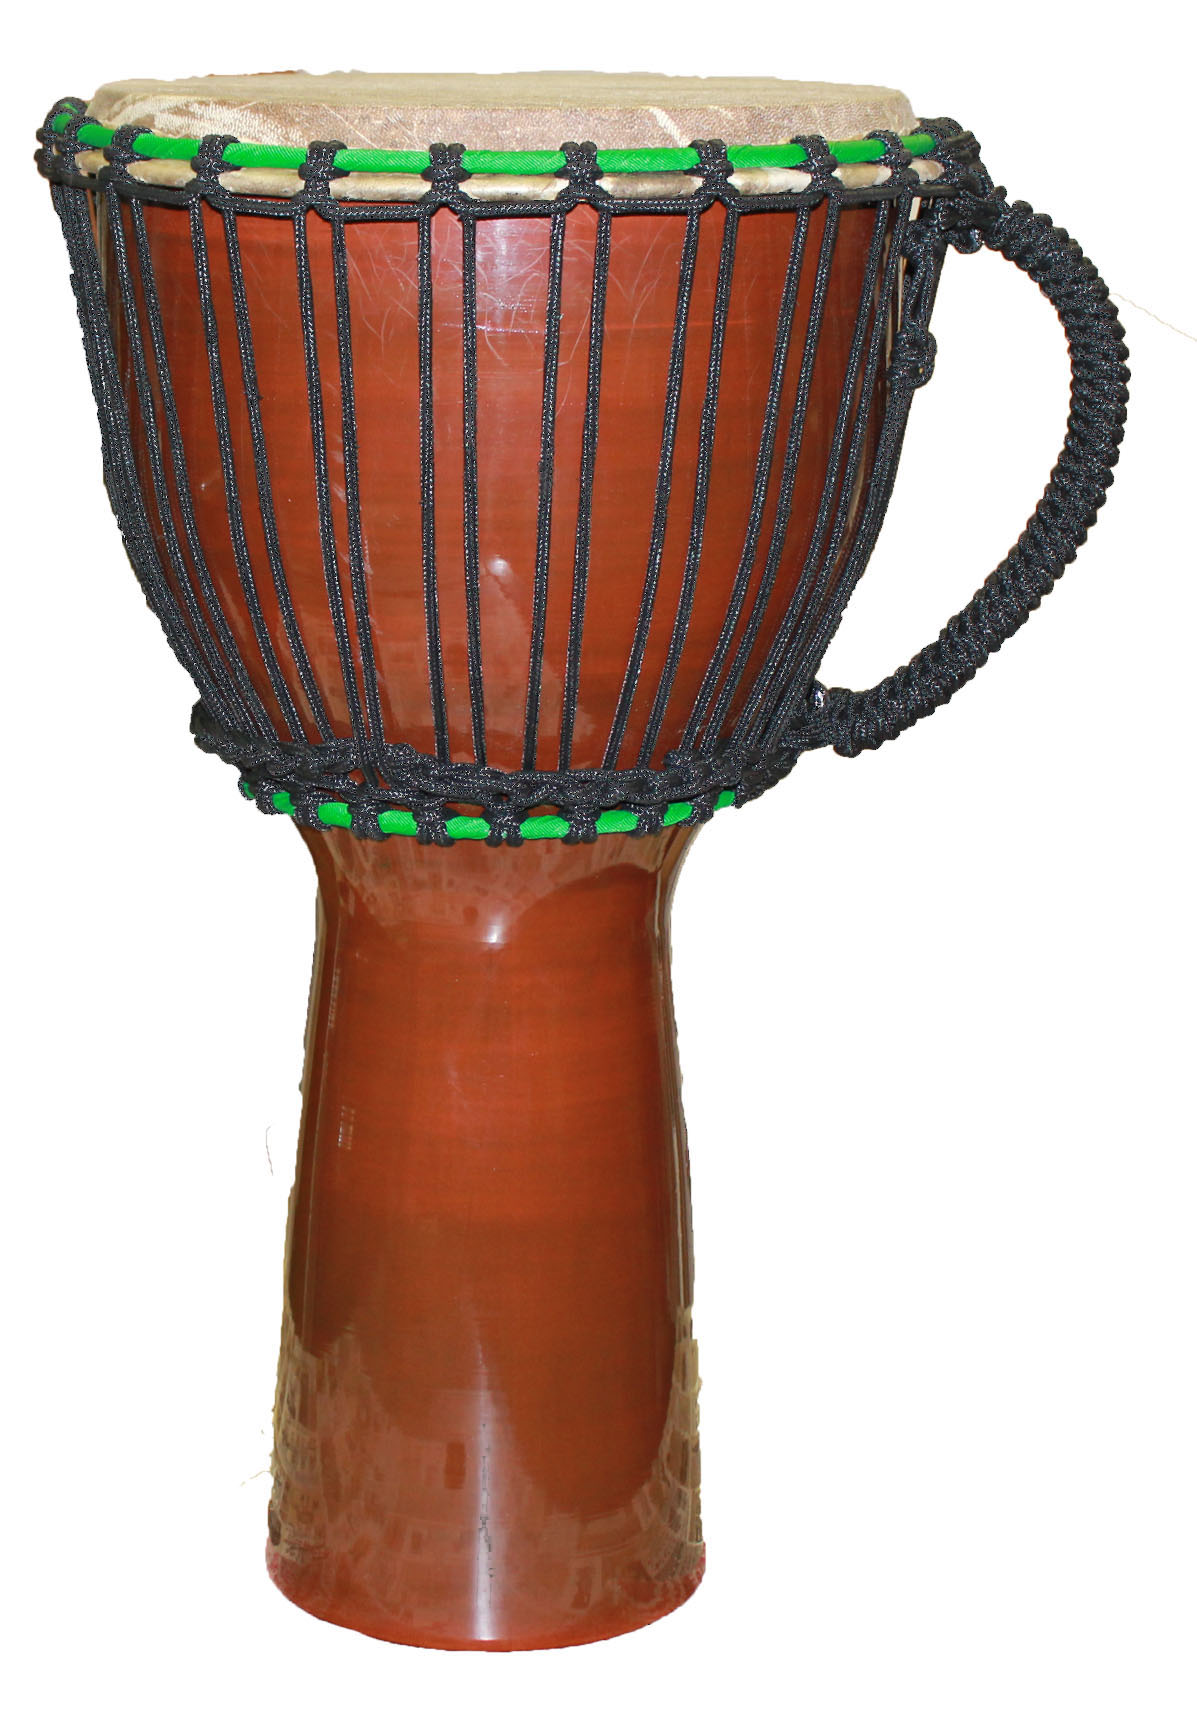 Djembe picture